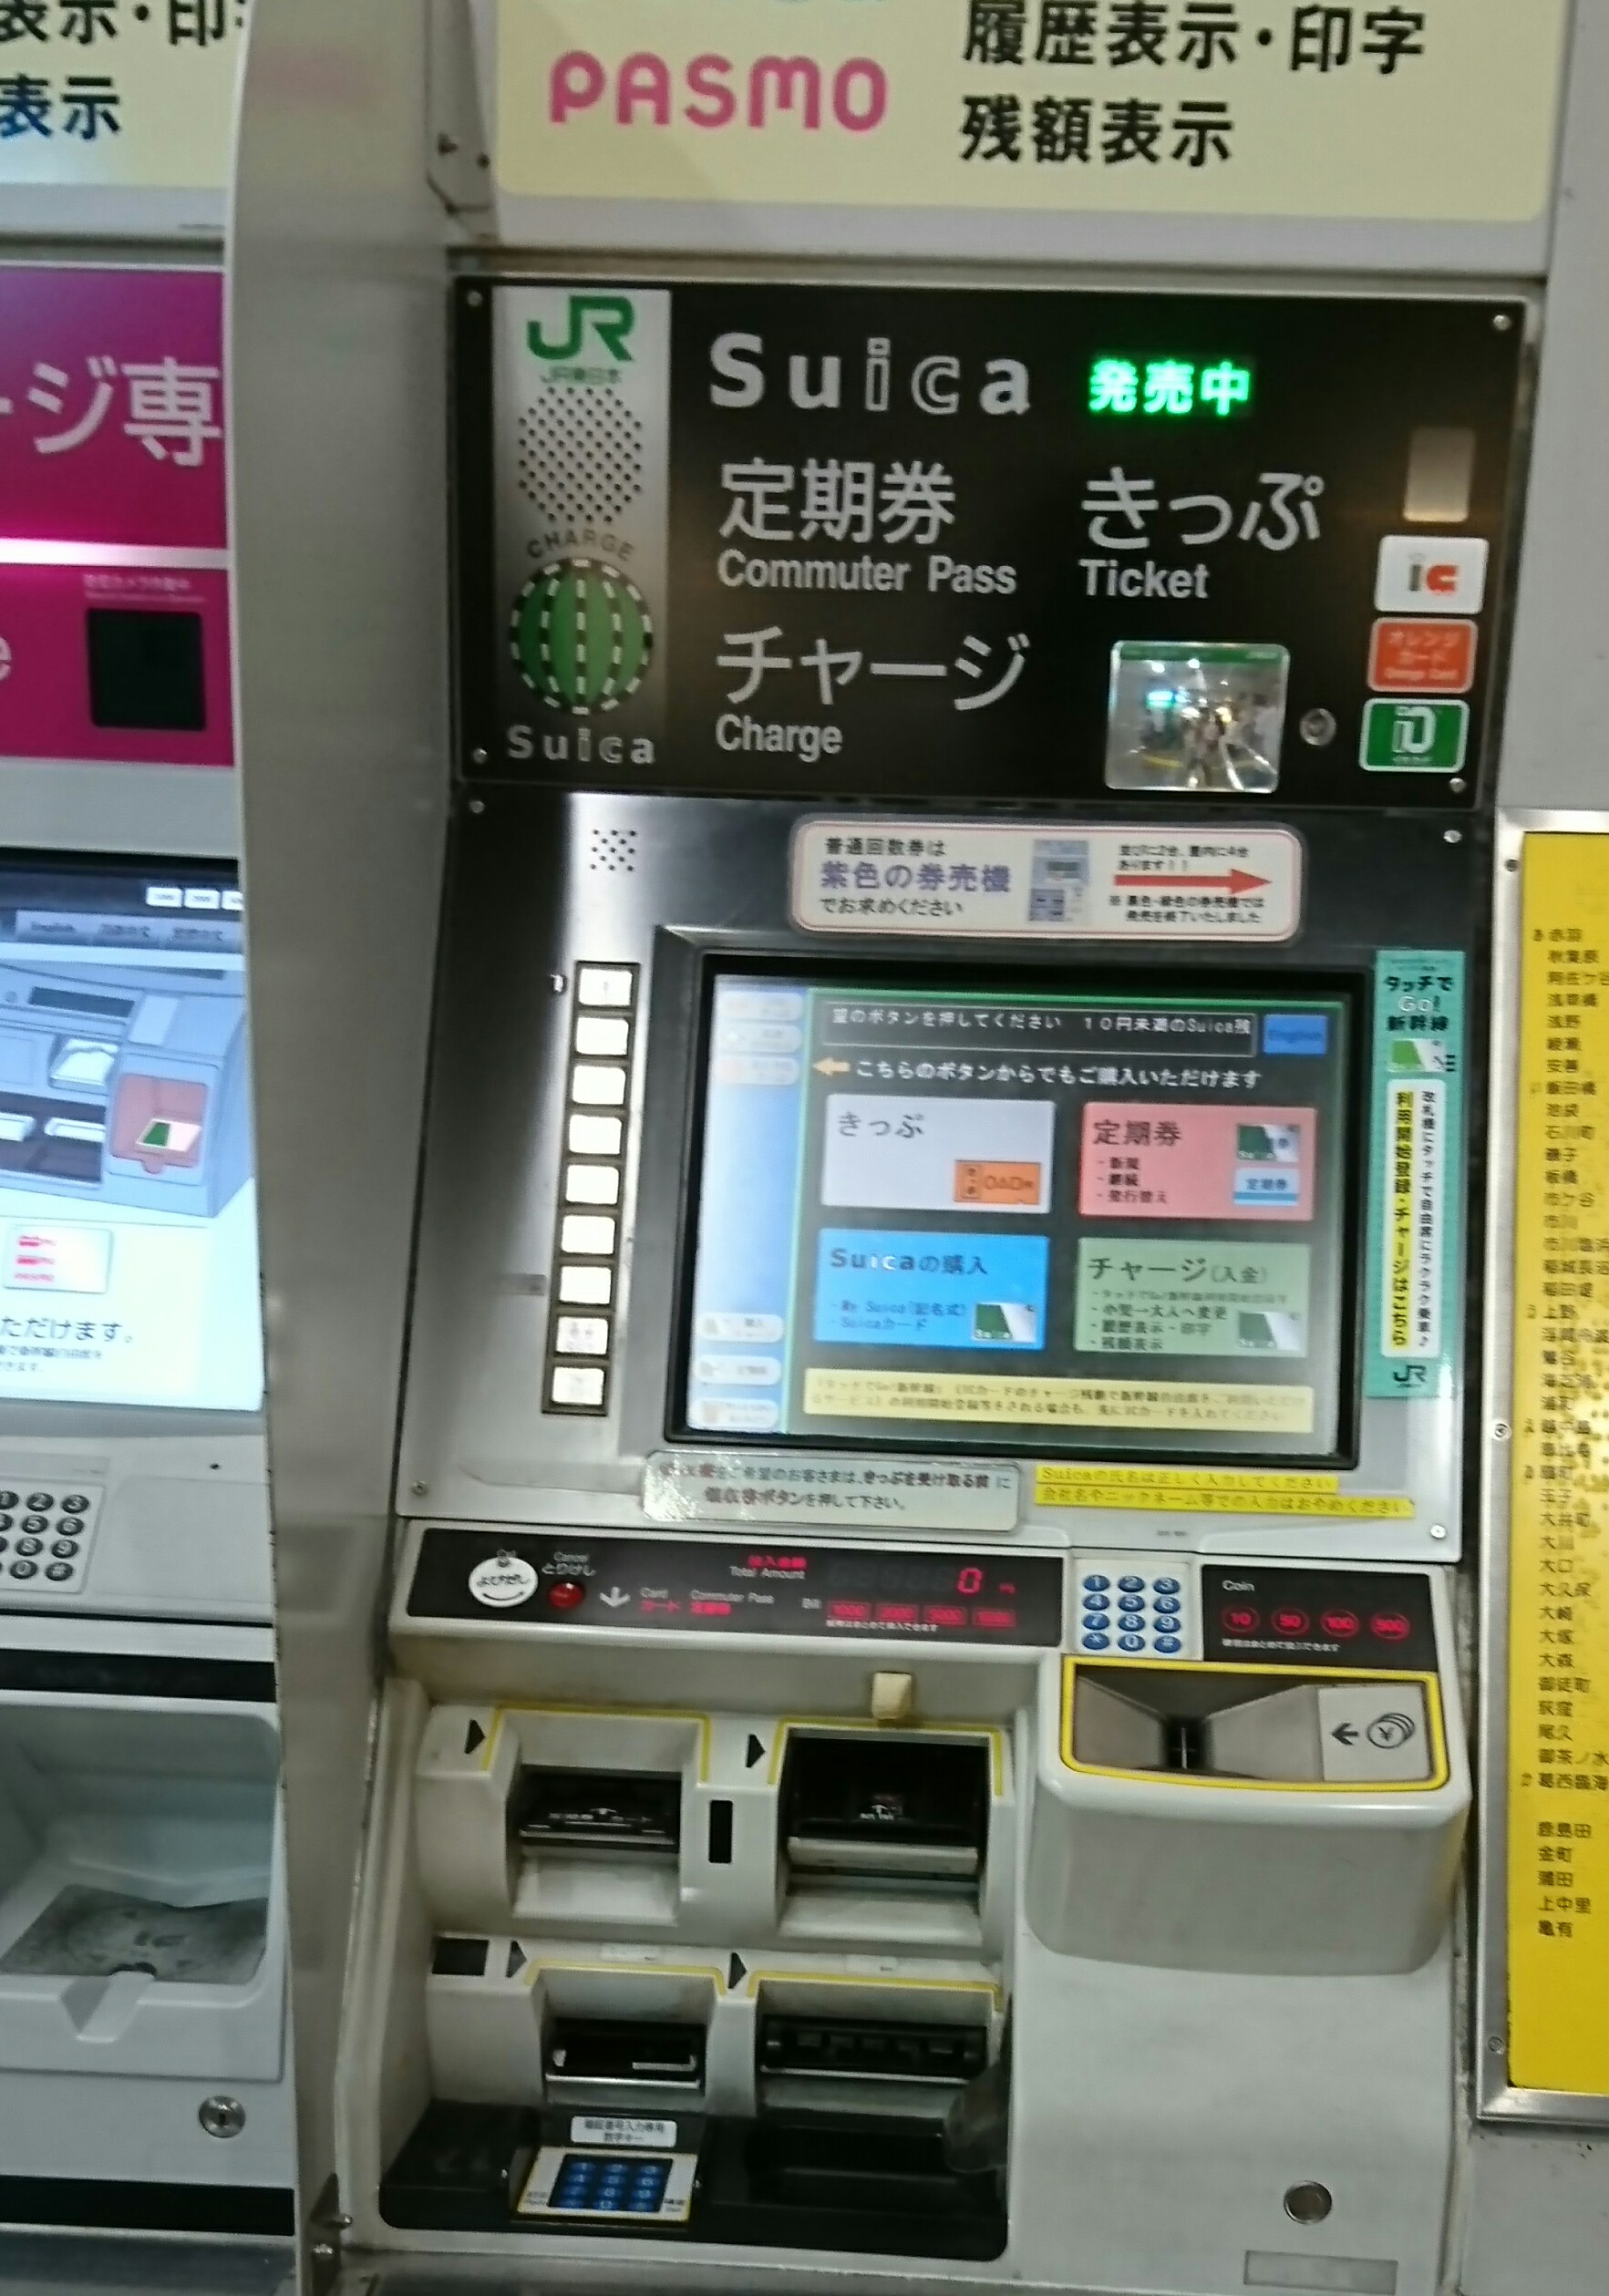 This is a ticket vending machine at a station in Tokyo.